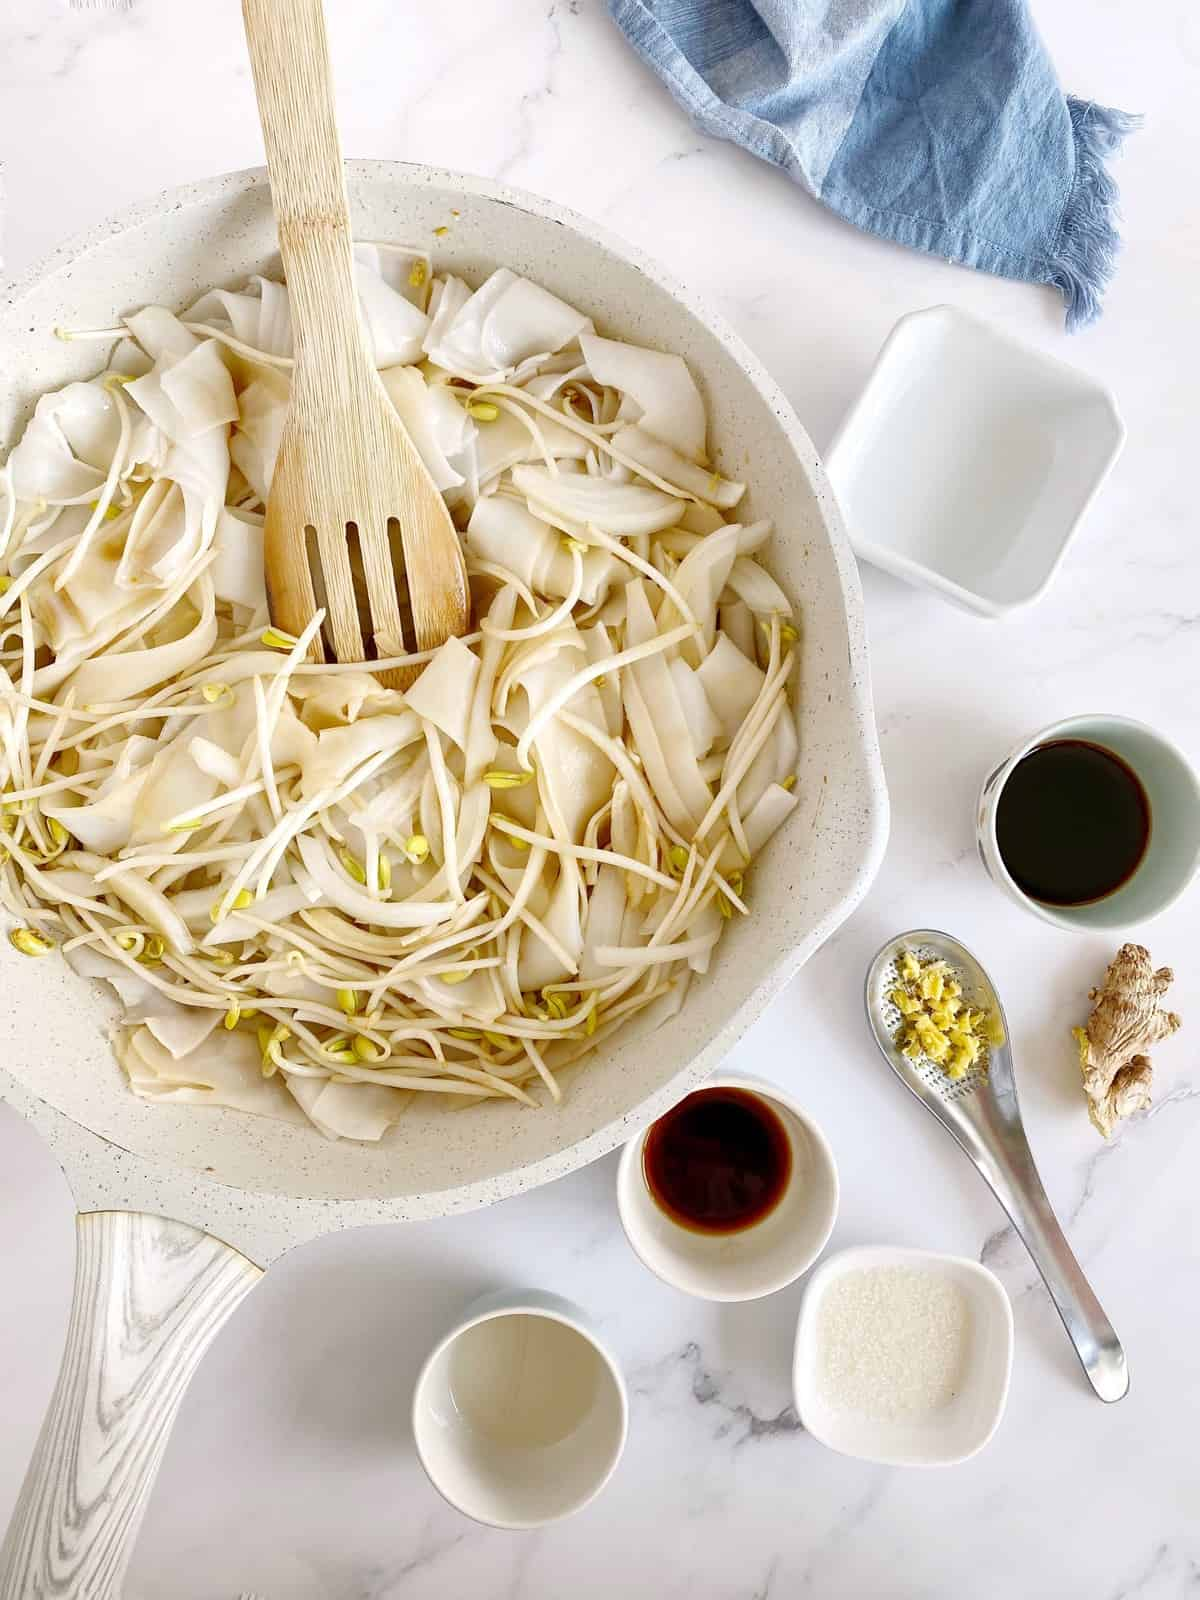 pan of noodles with seasonings ready to be added